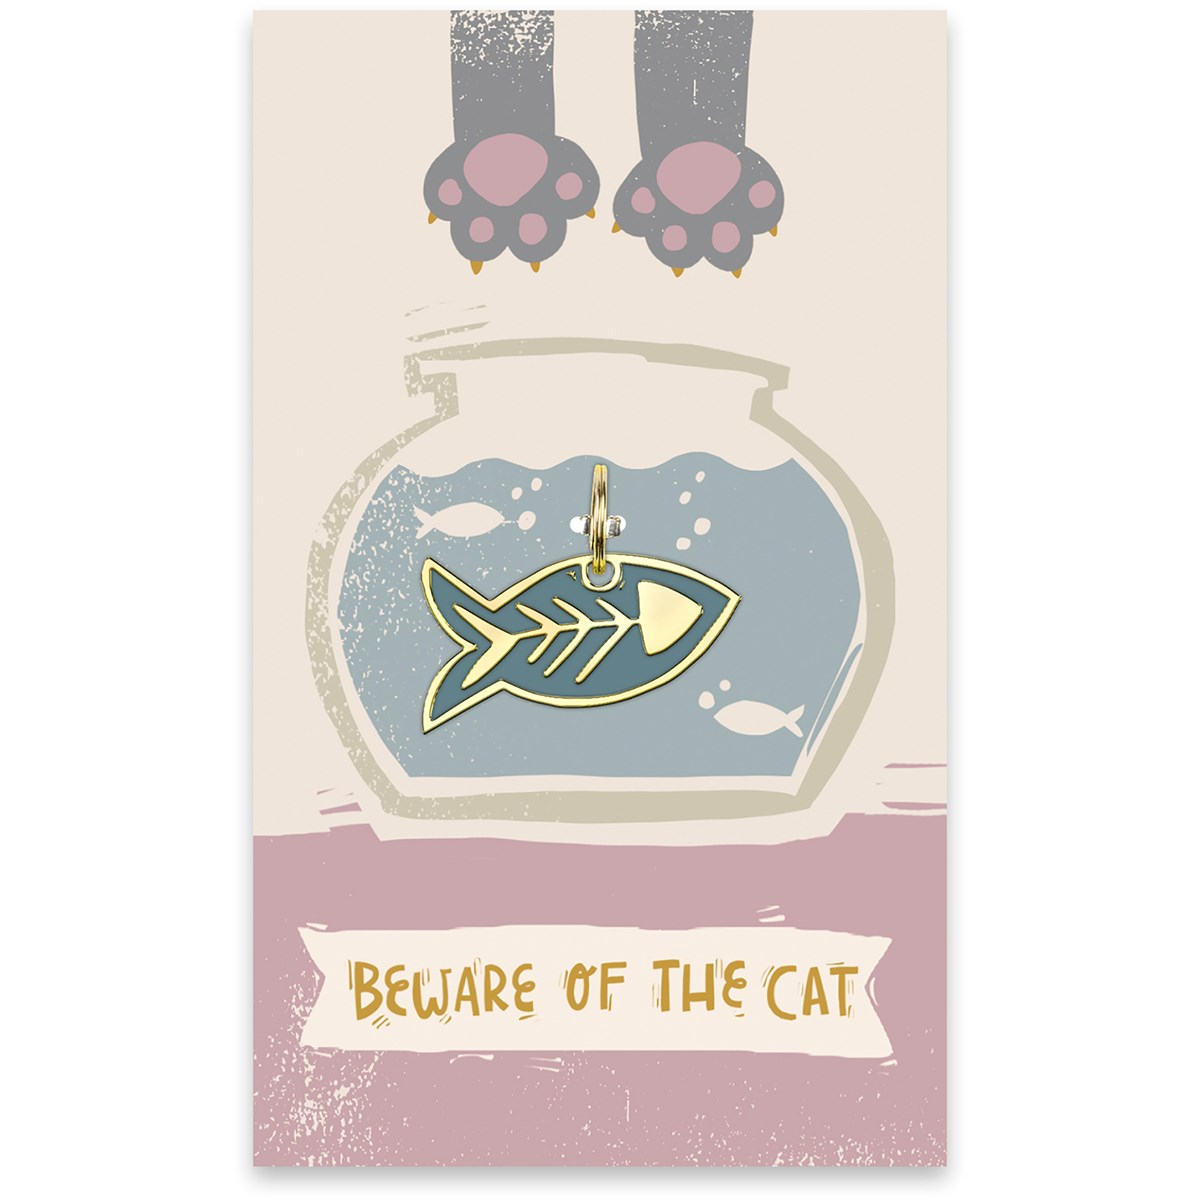 "Collar Charm - Beware Of The Cat - Charm: 1.50"" x 0.75"", Card: 3"" x 5"" - Metal, Enamel, Paper"